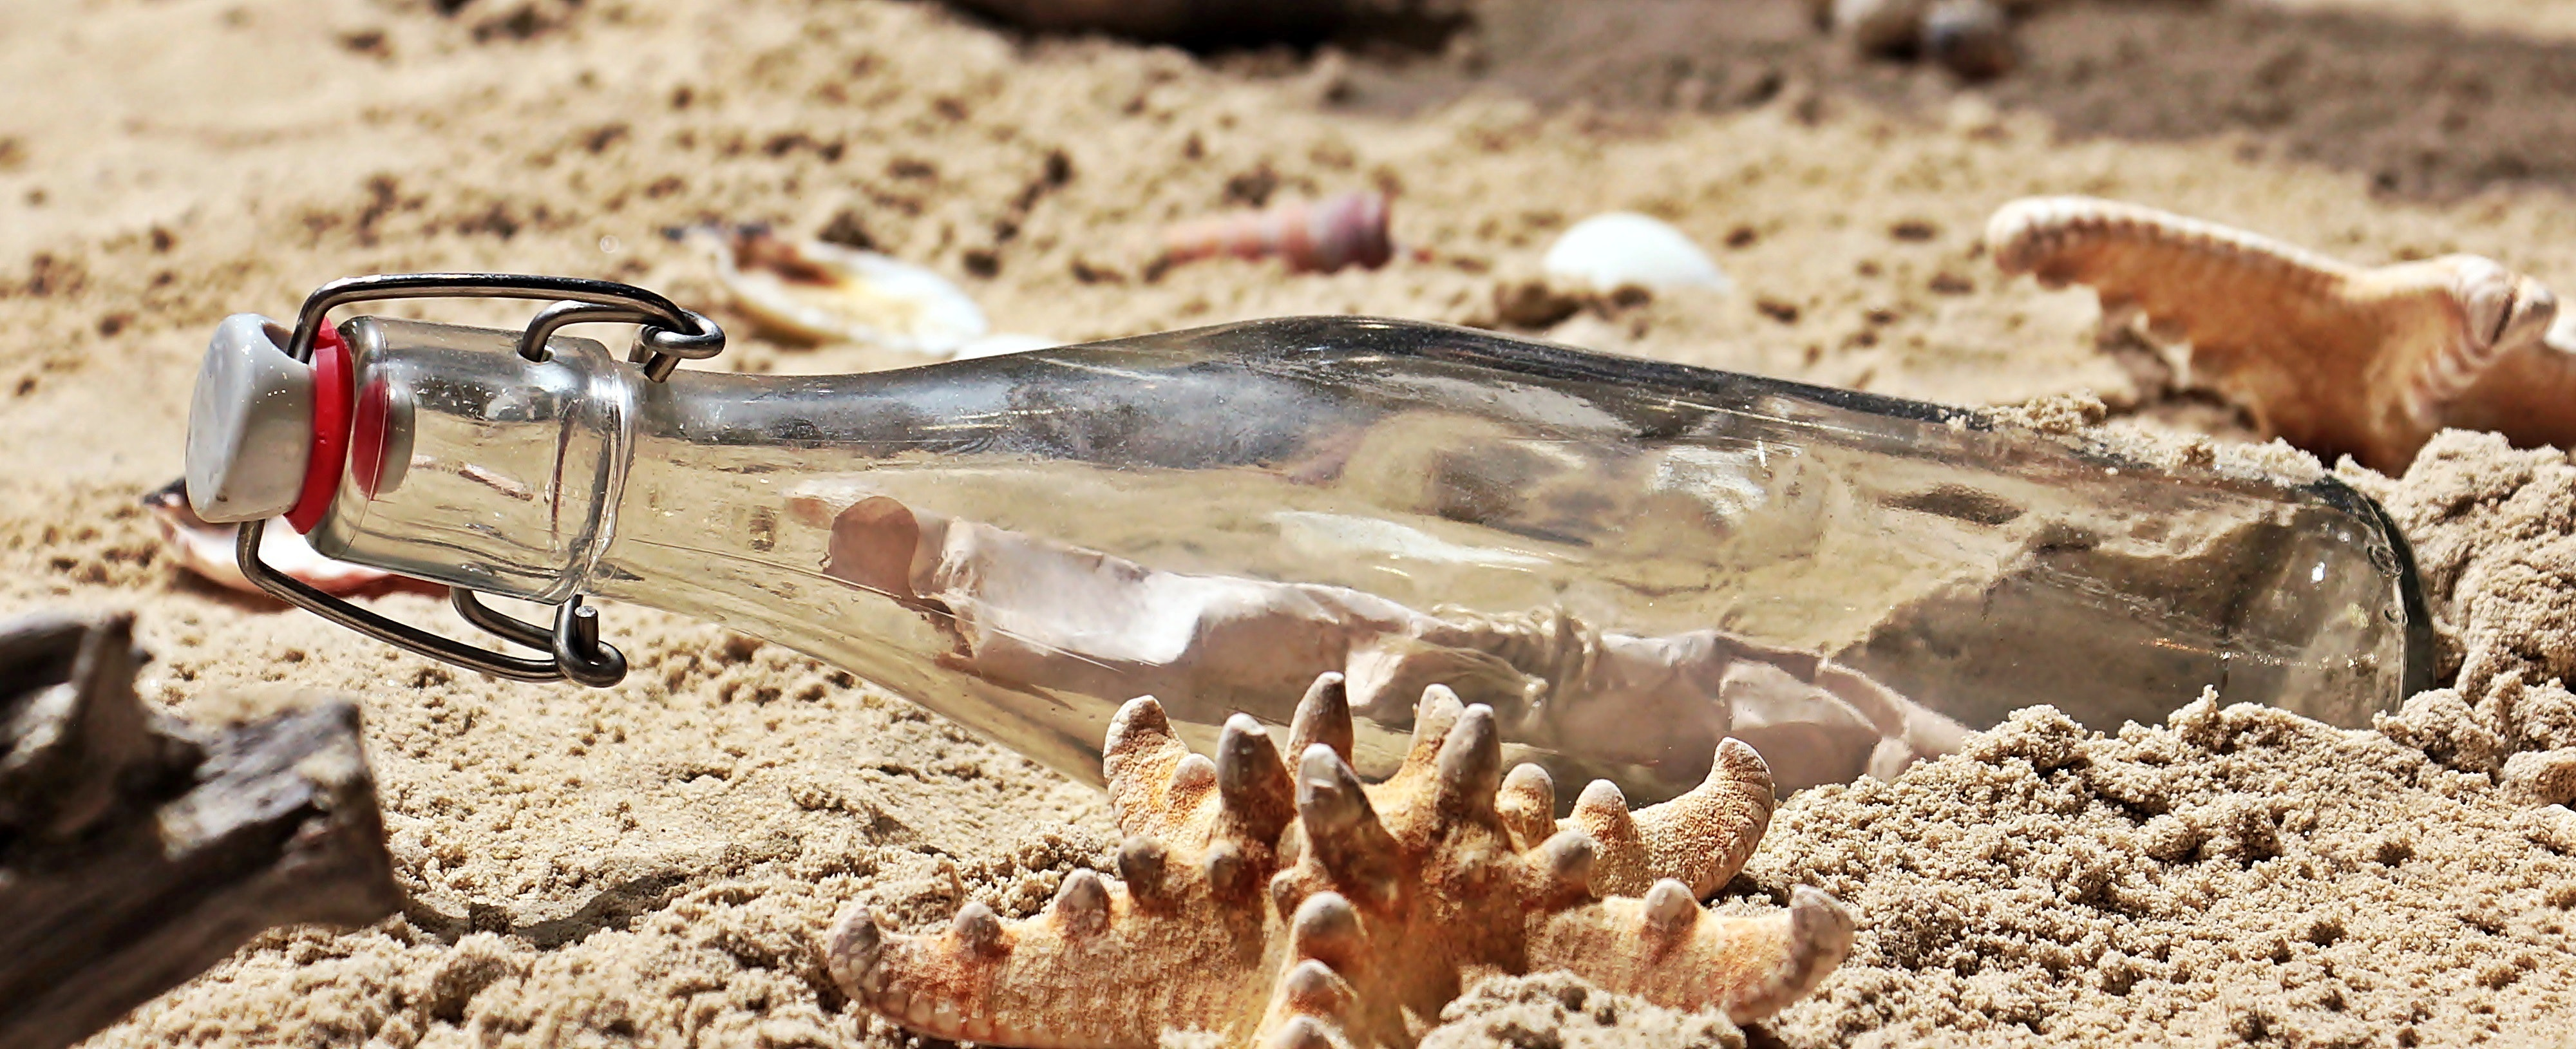 Message in a Bottle on Sand, Outdoors, Travel, Starfish, Shore, HQ Photo